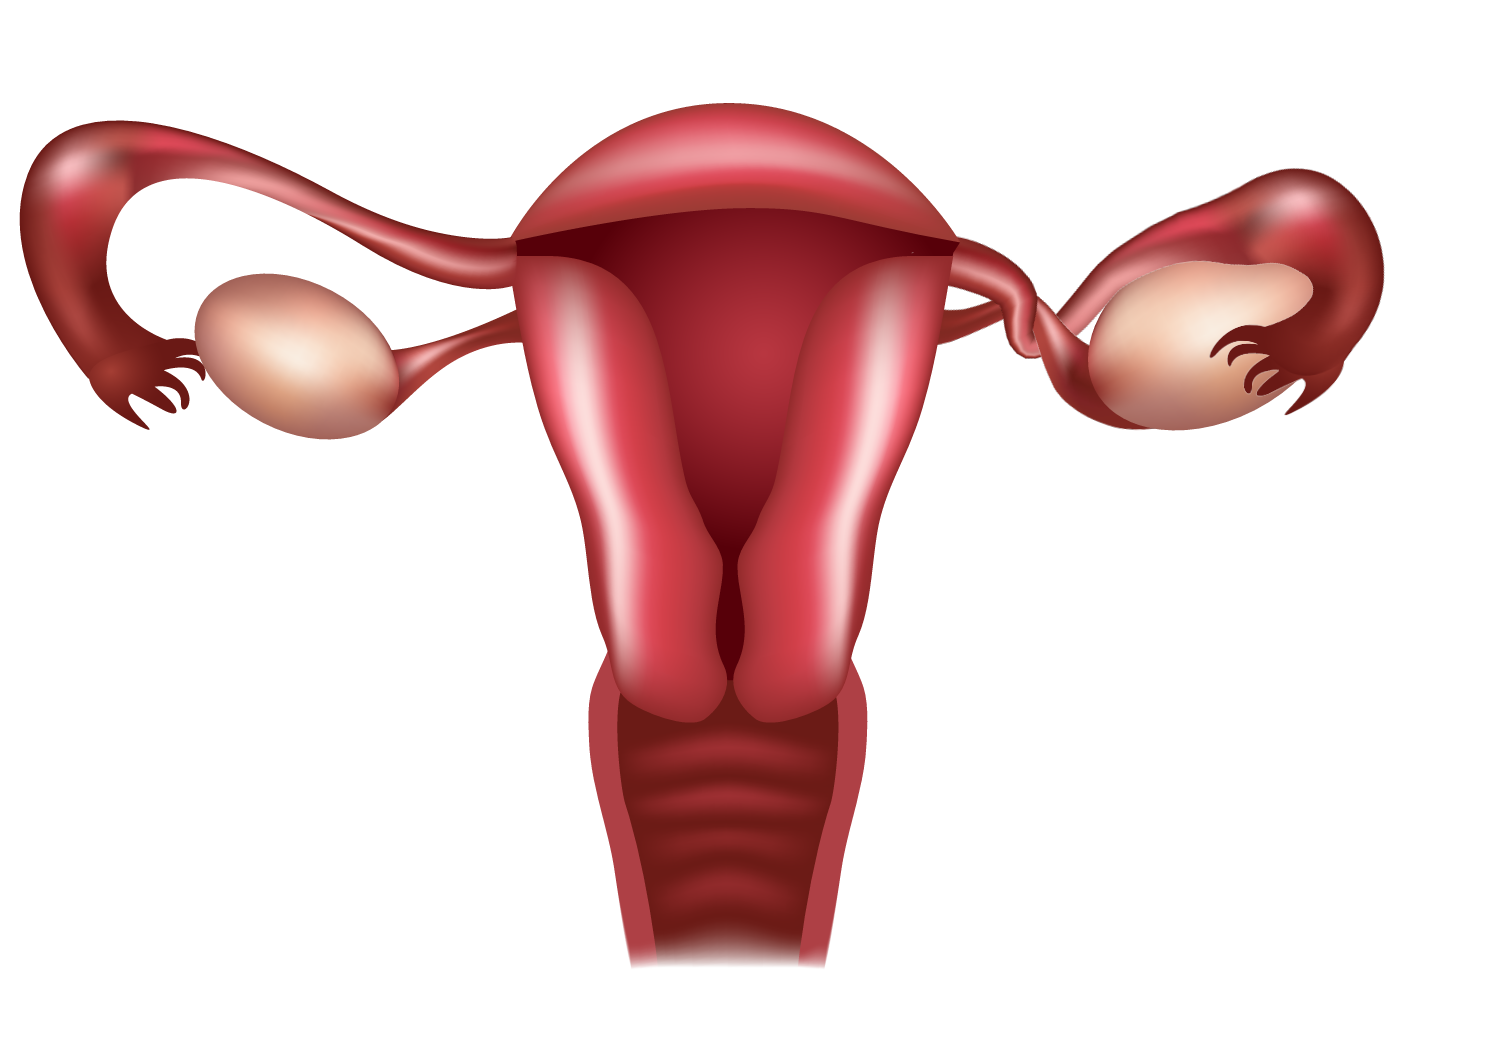 Illustration of blocked fallopian tube